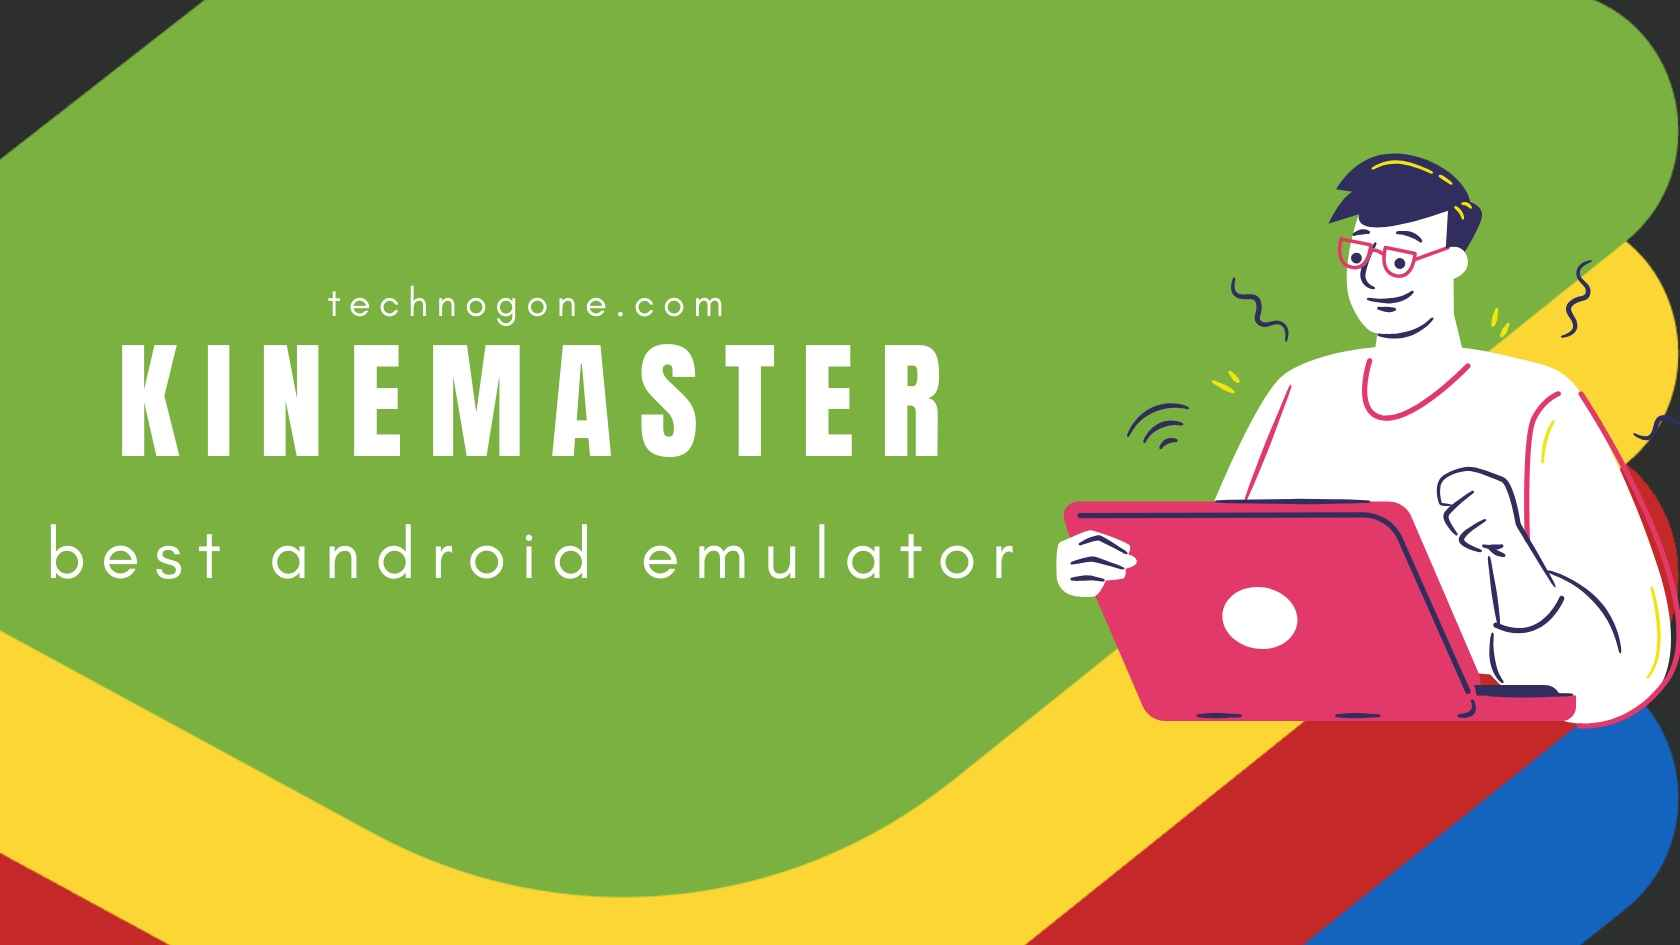 android emulator for kinemaster